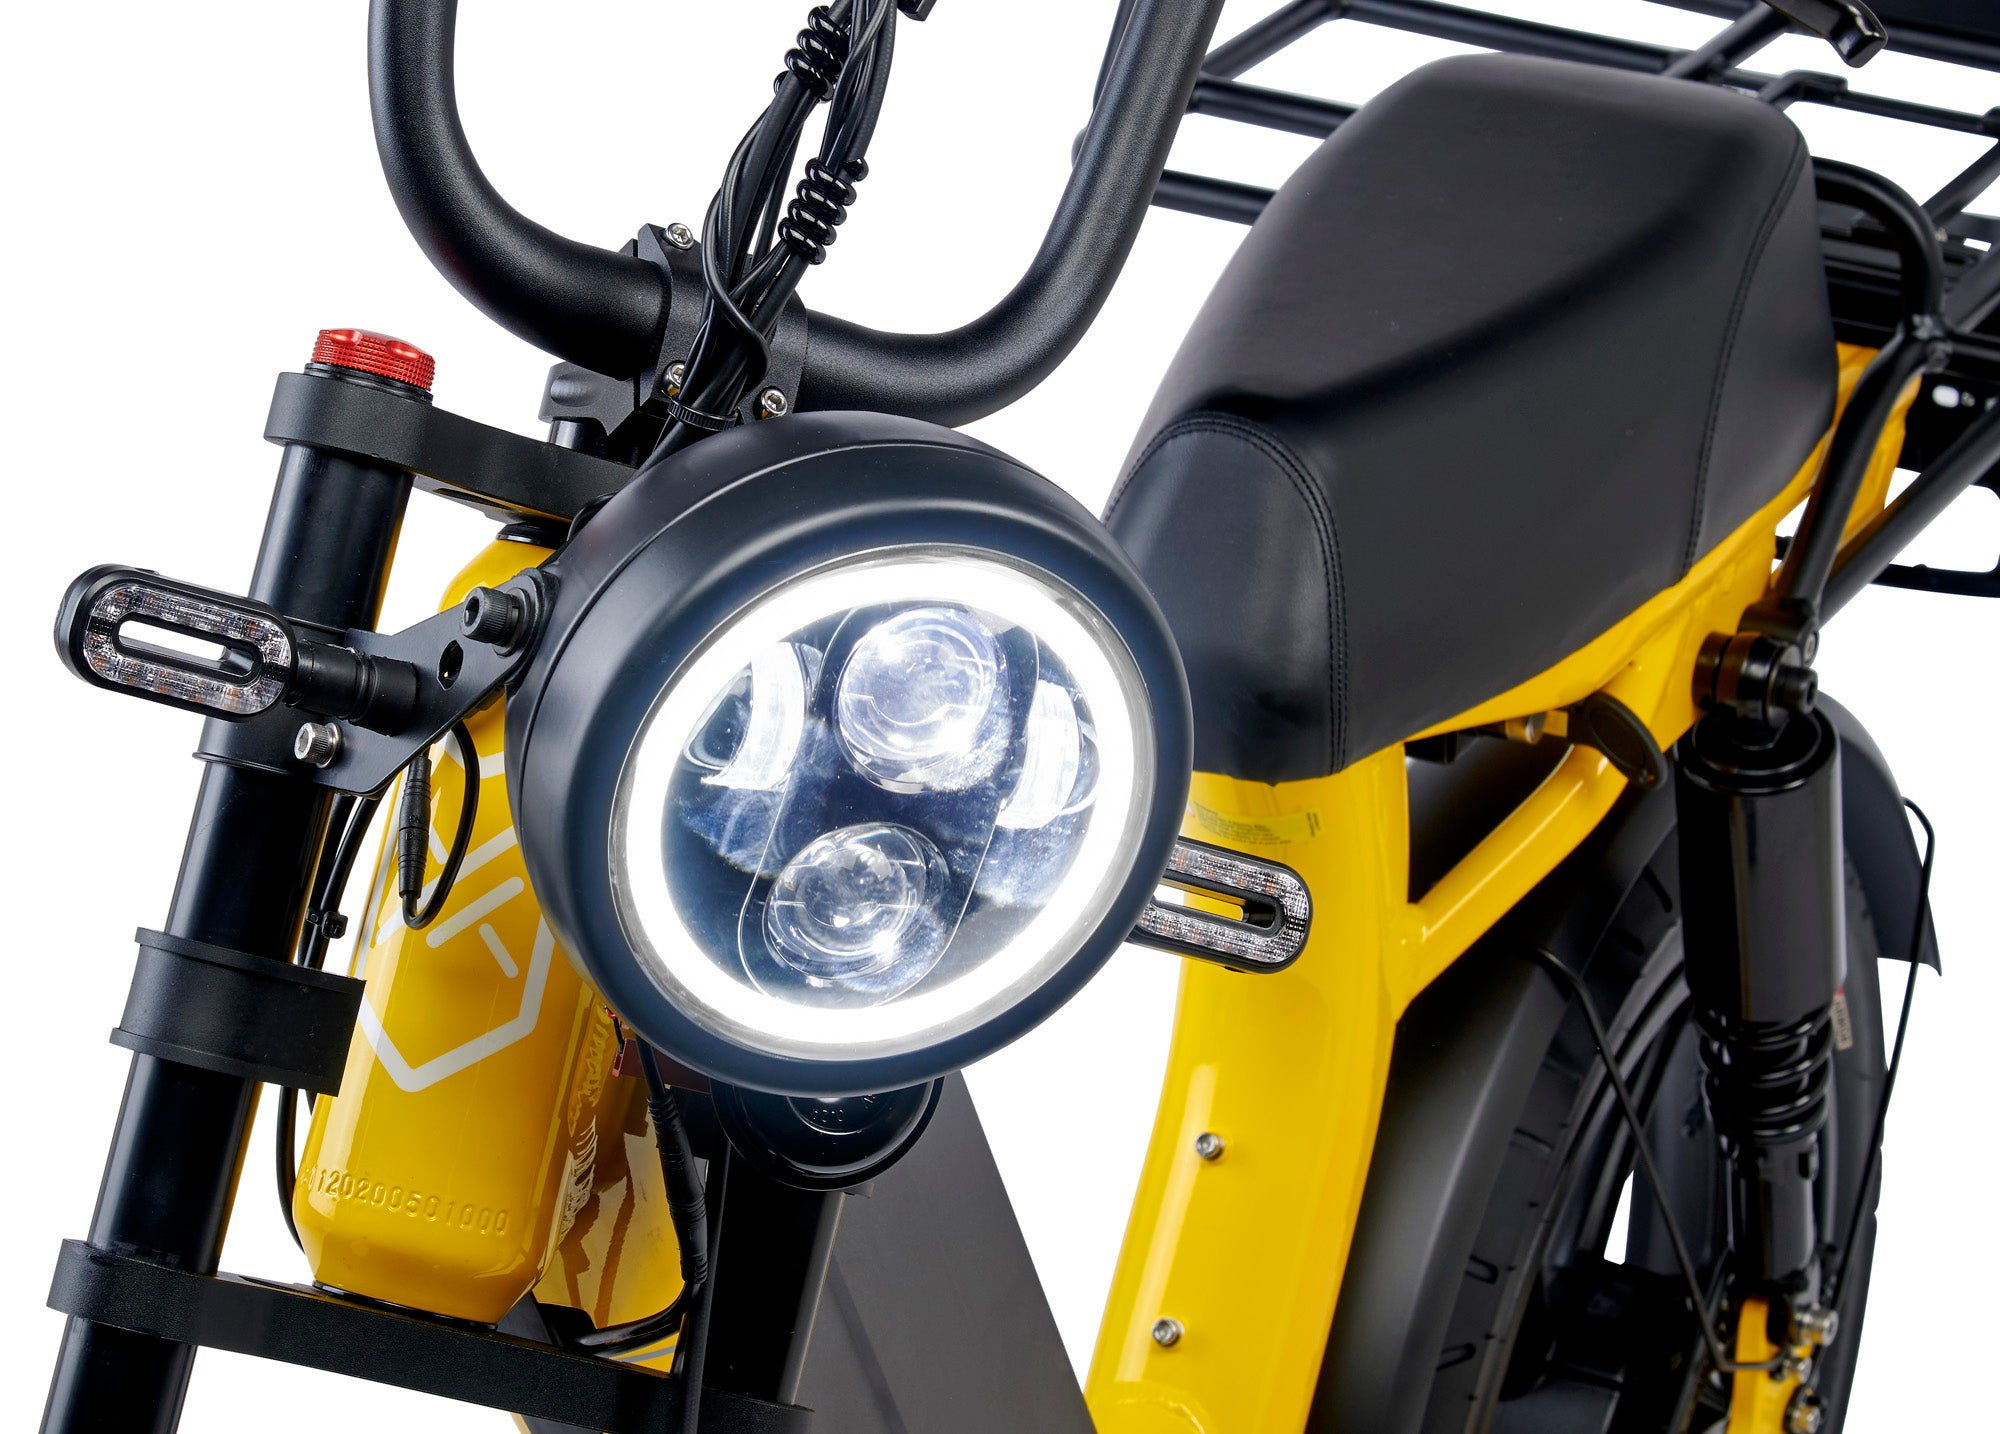 Juiced bikes bright headlight